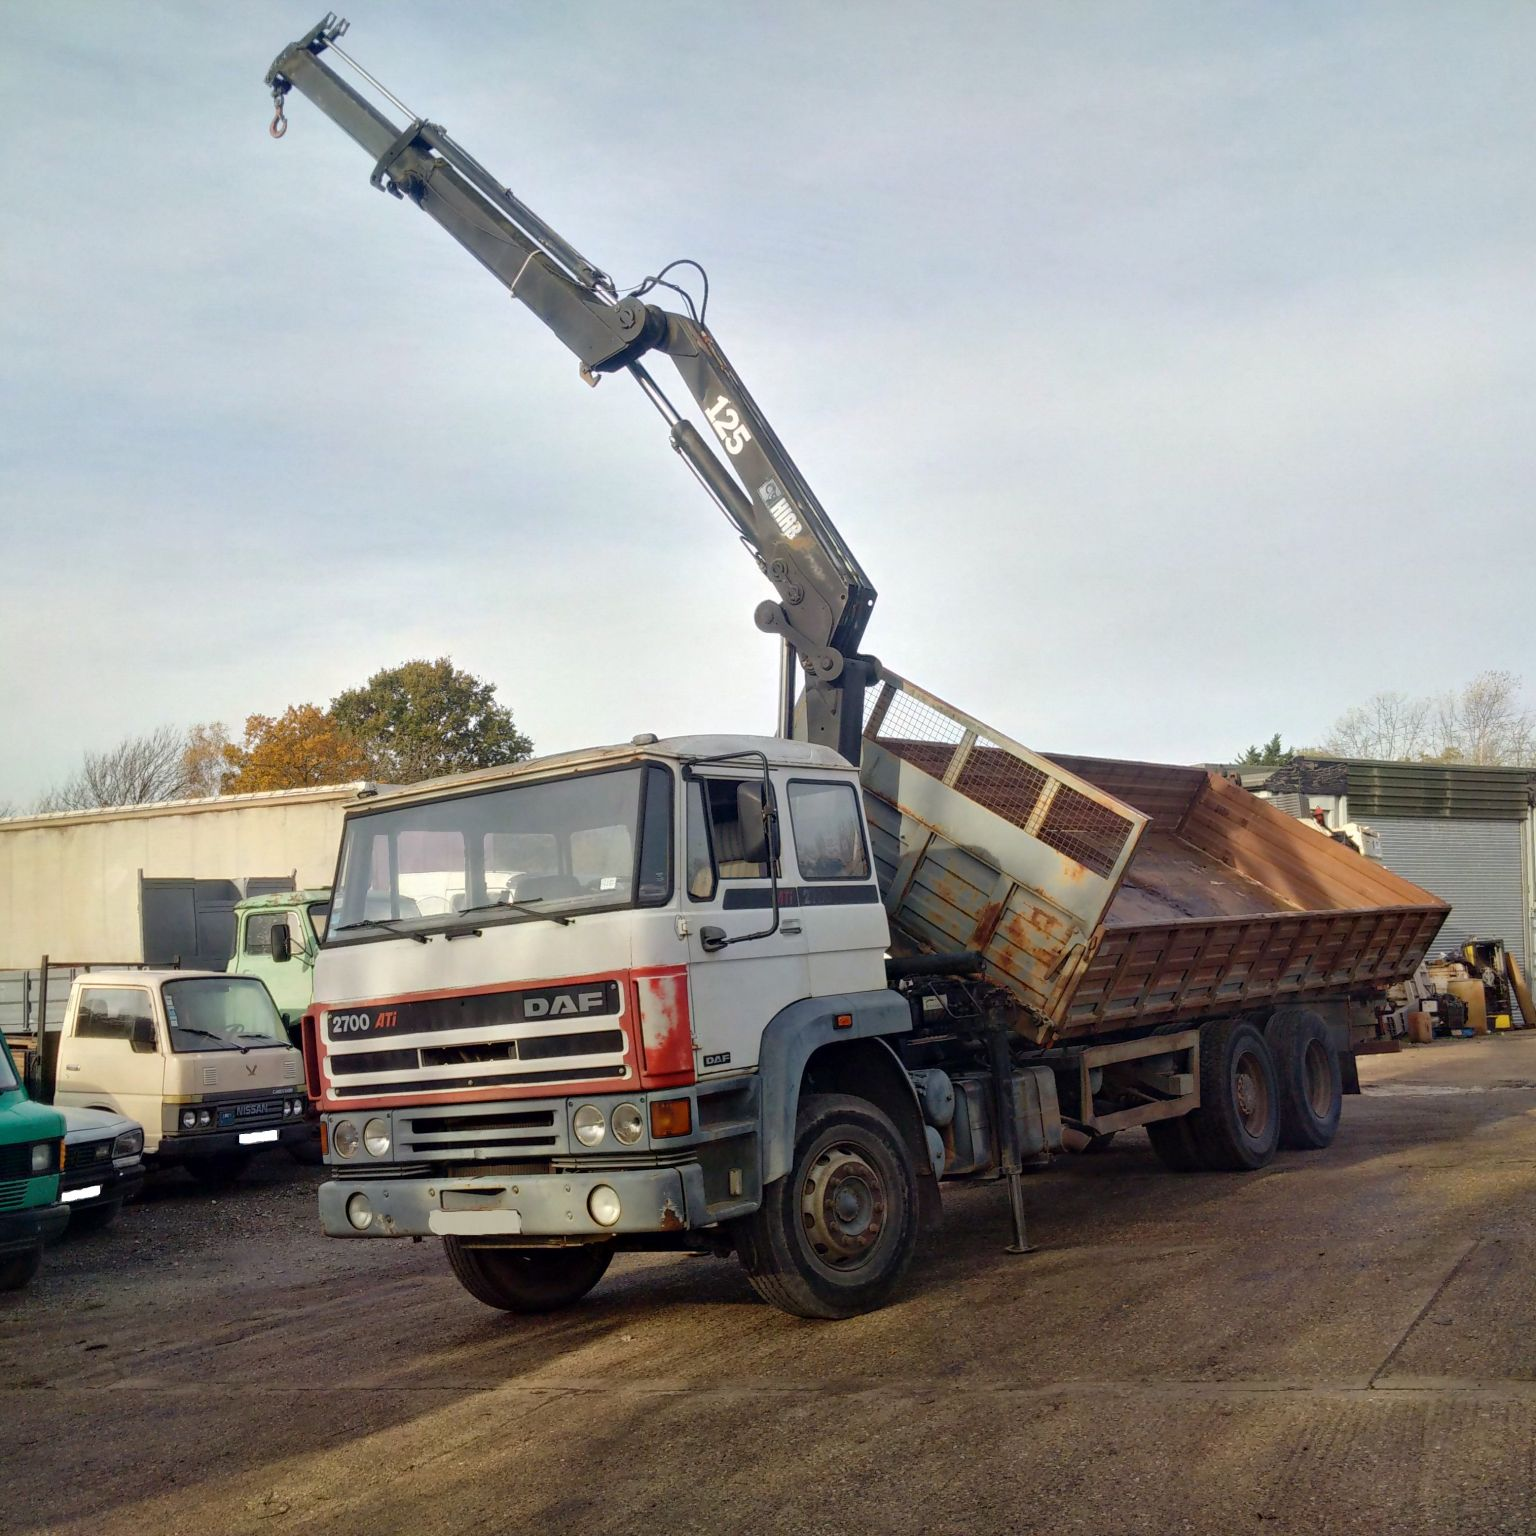 Left hand drive DAF 2700 ATI 10 tyres 26 ton tipper with HIAB 125 crane.